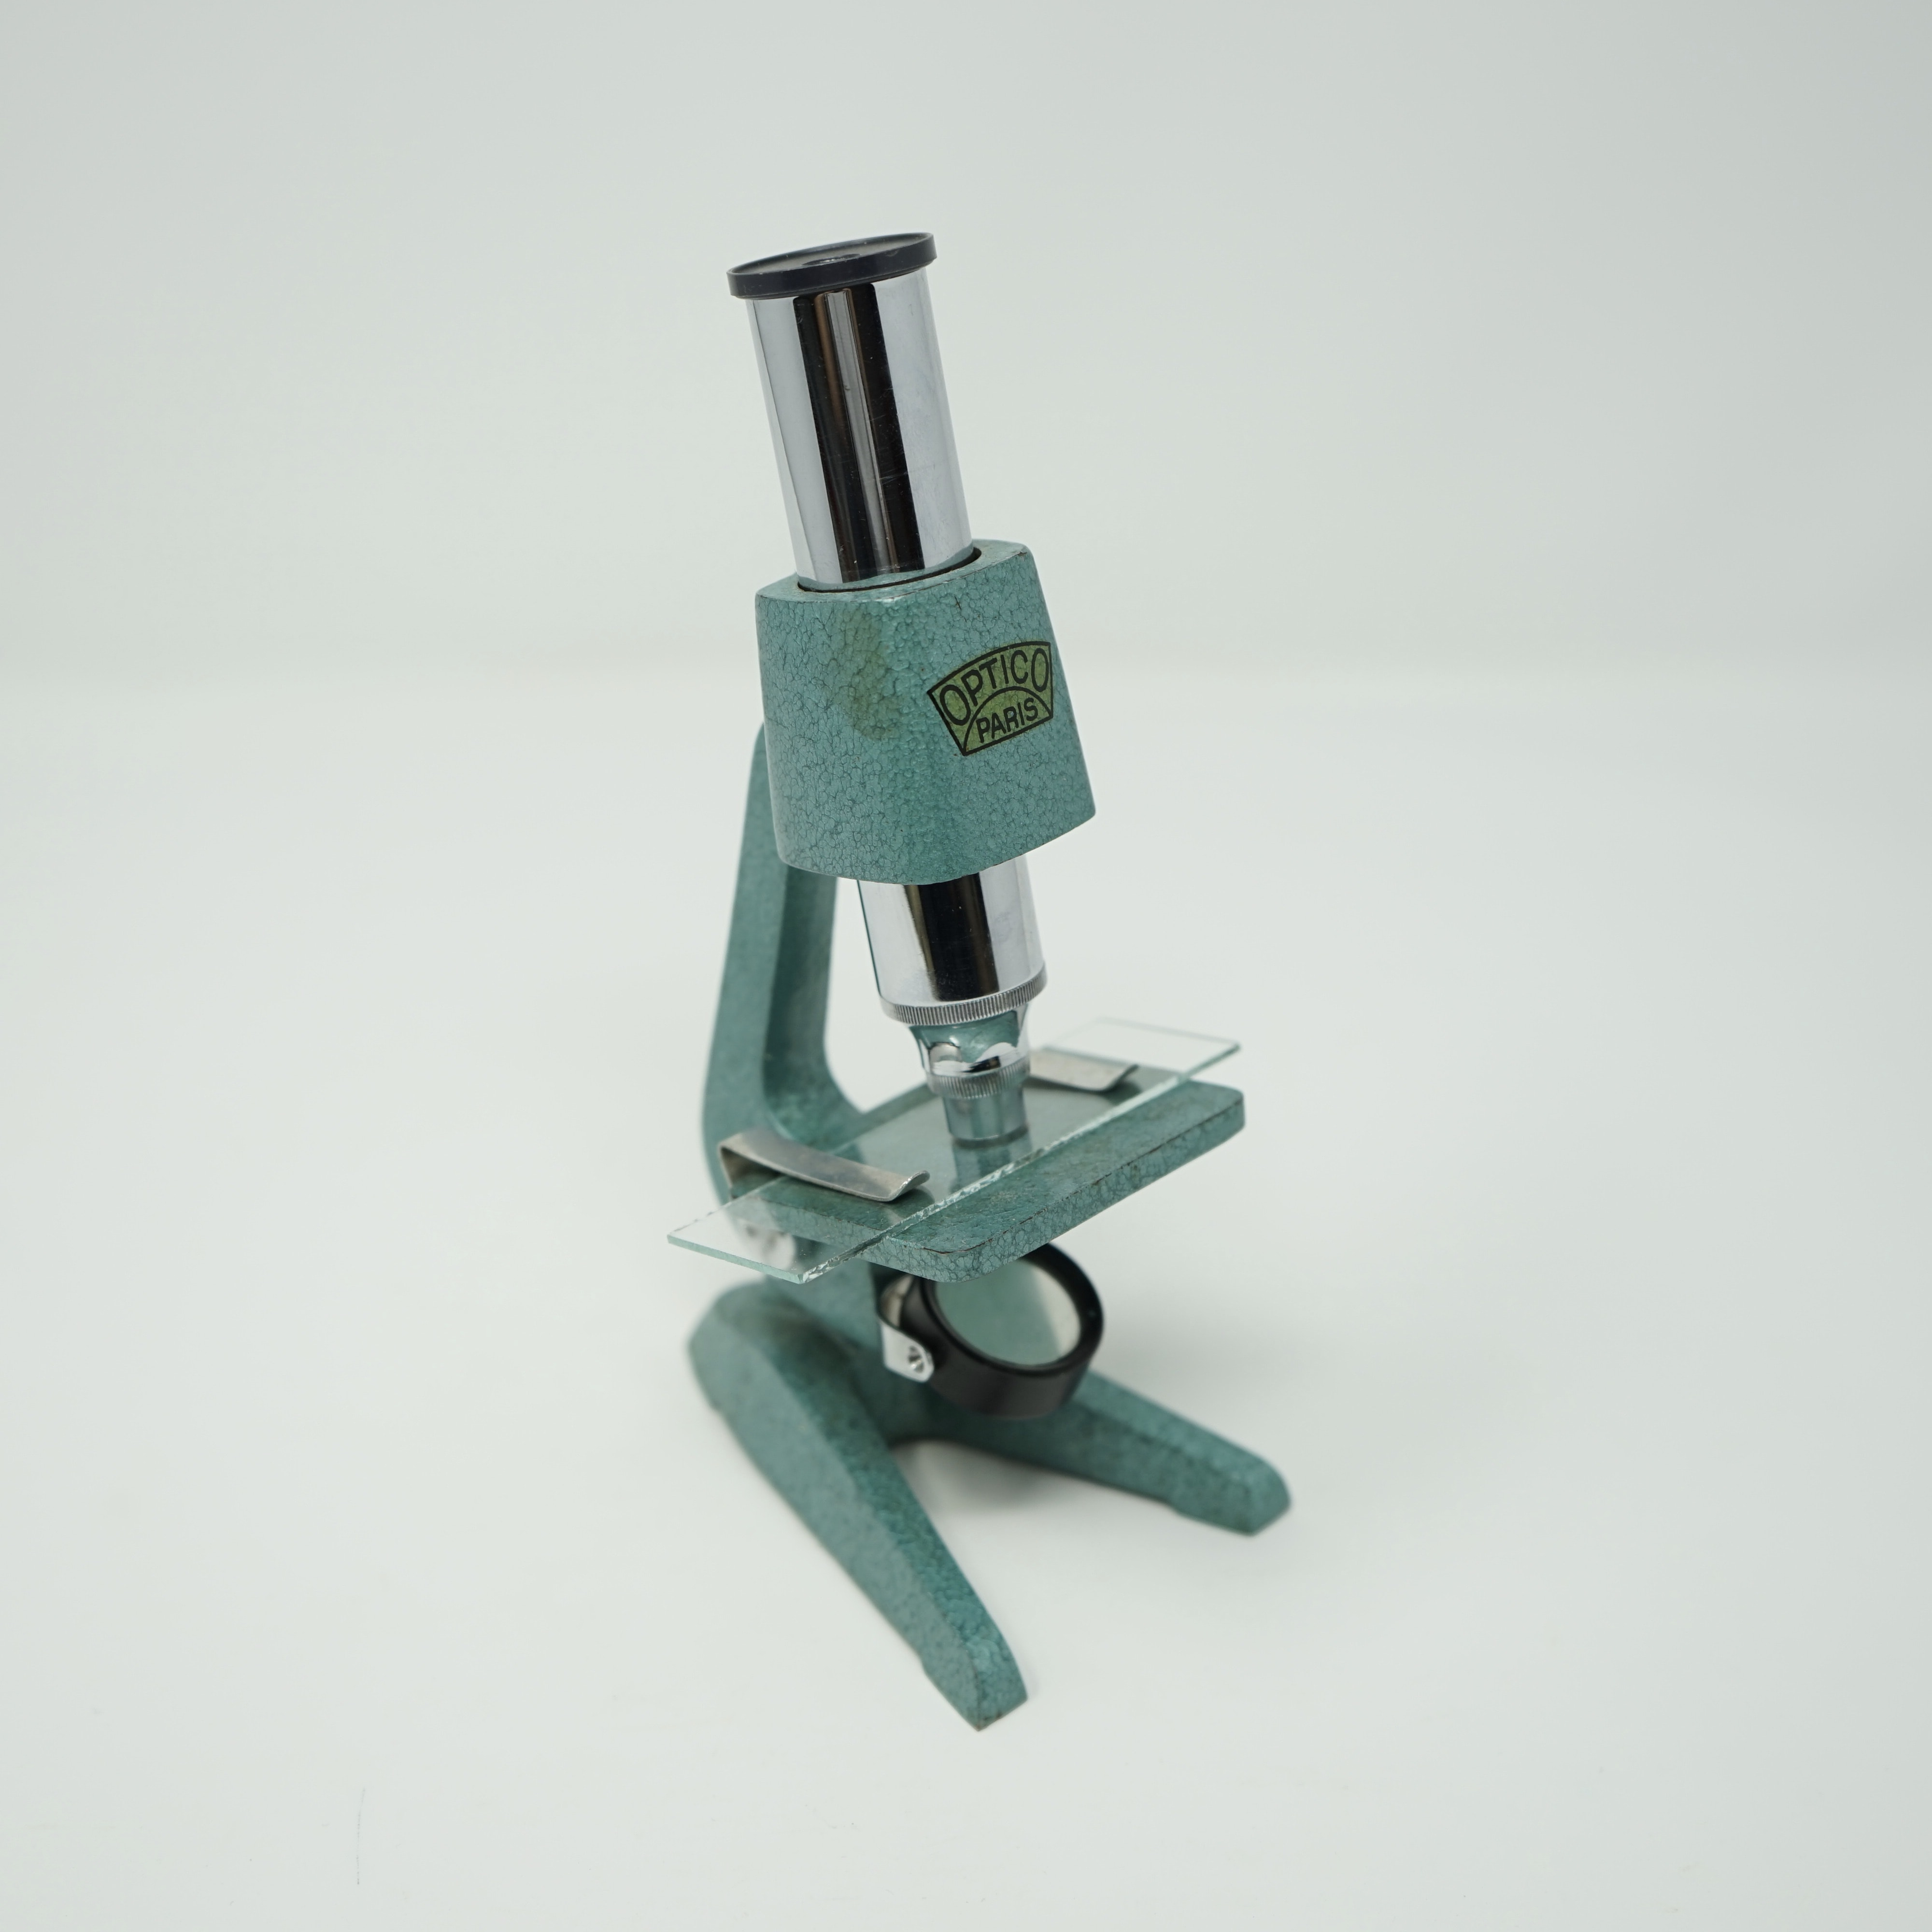 Petit Microscope Optico Paris